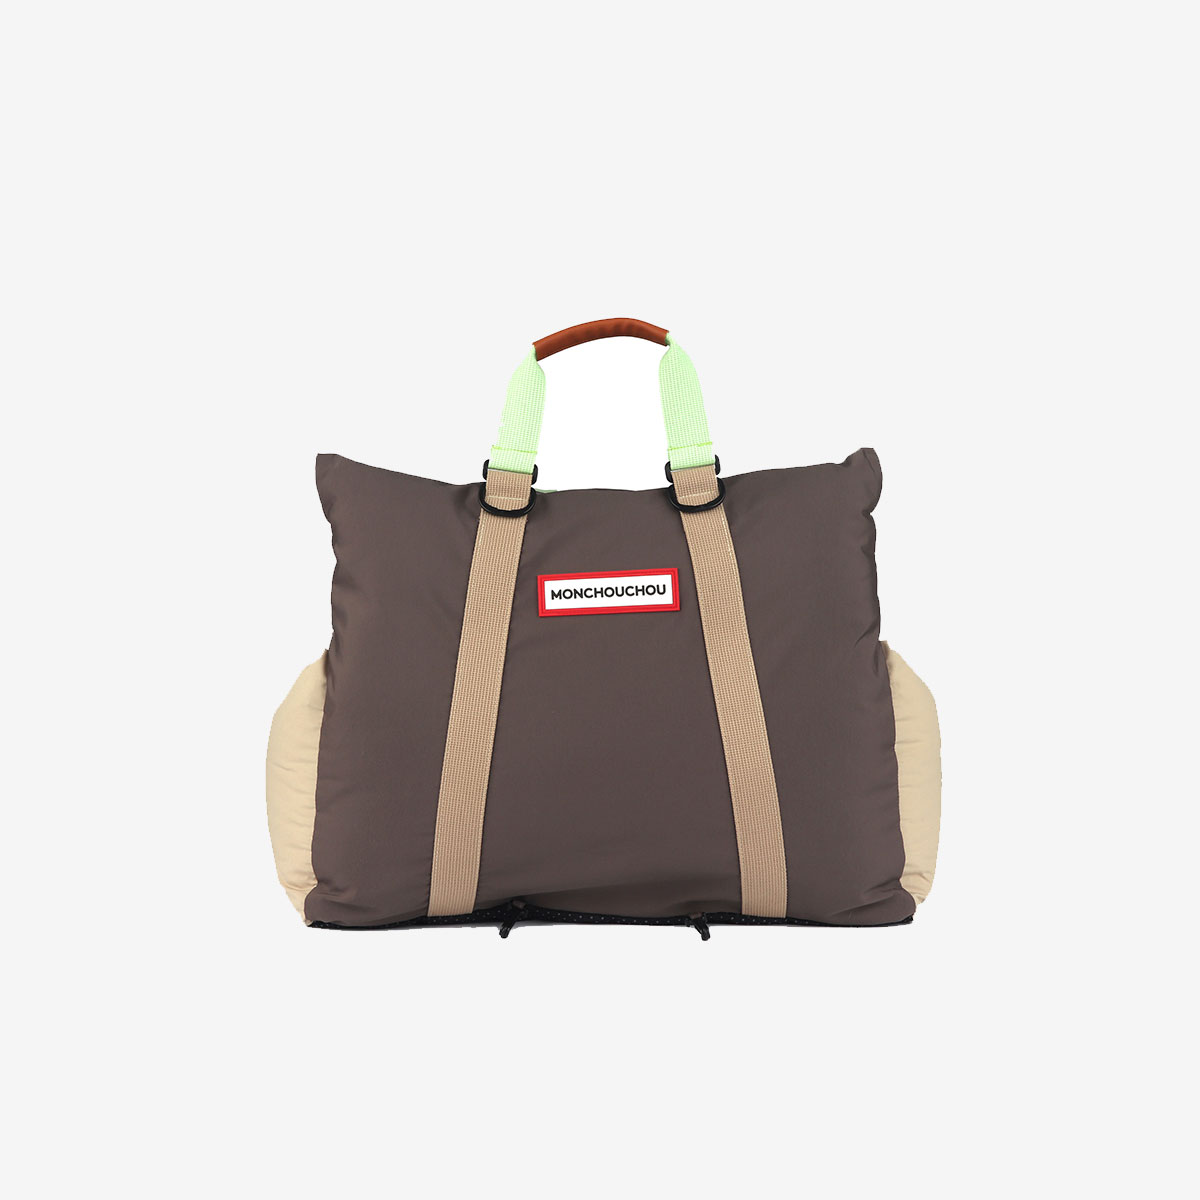 몽슈슈 카시트 MONCHOUCHOU 6th Mon Carseat Clay Brown